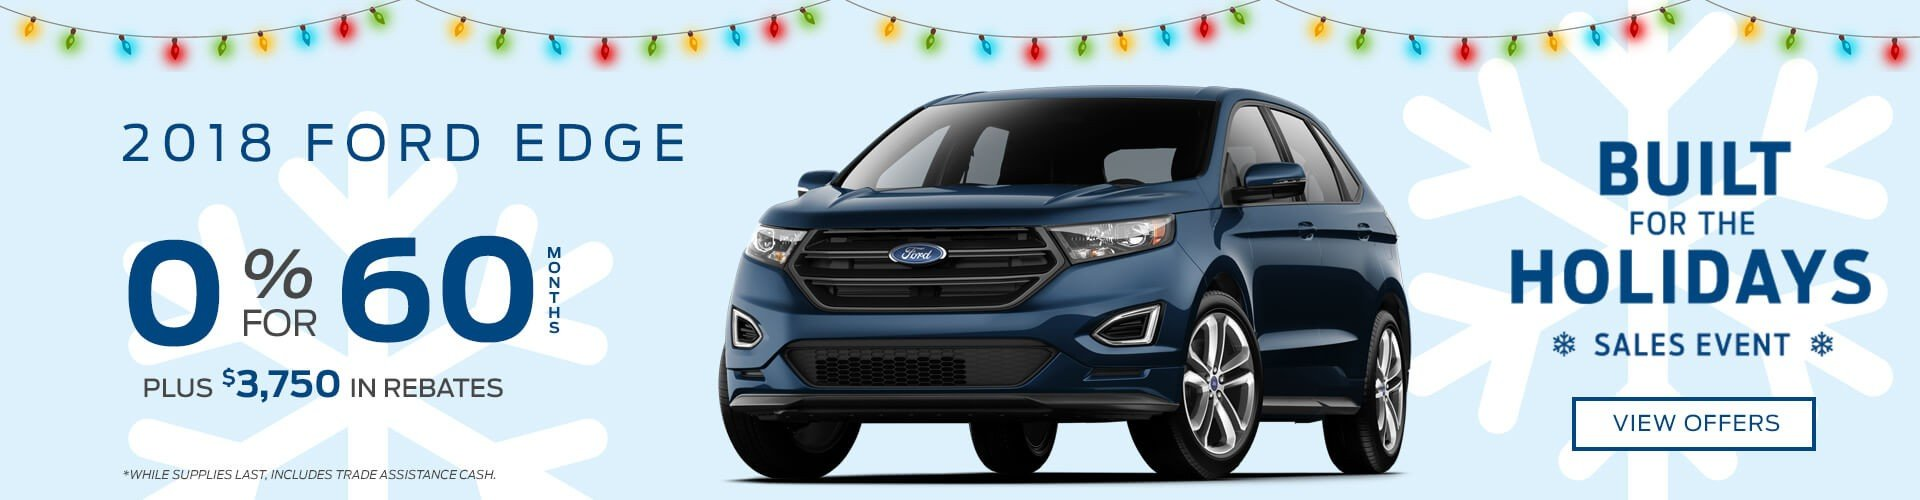 Special offer on 2018 Ford Edge 2018 Ford Edge